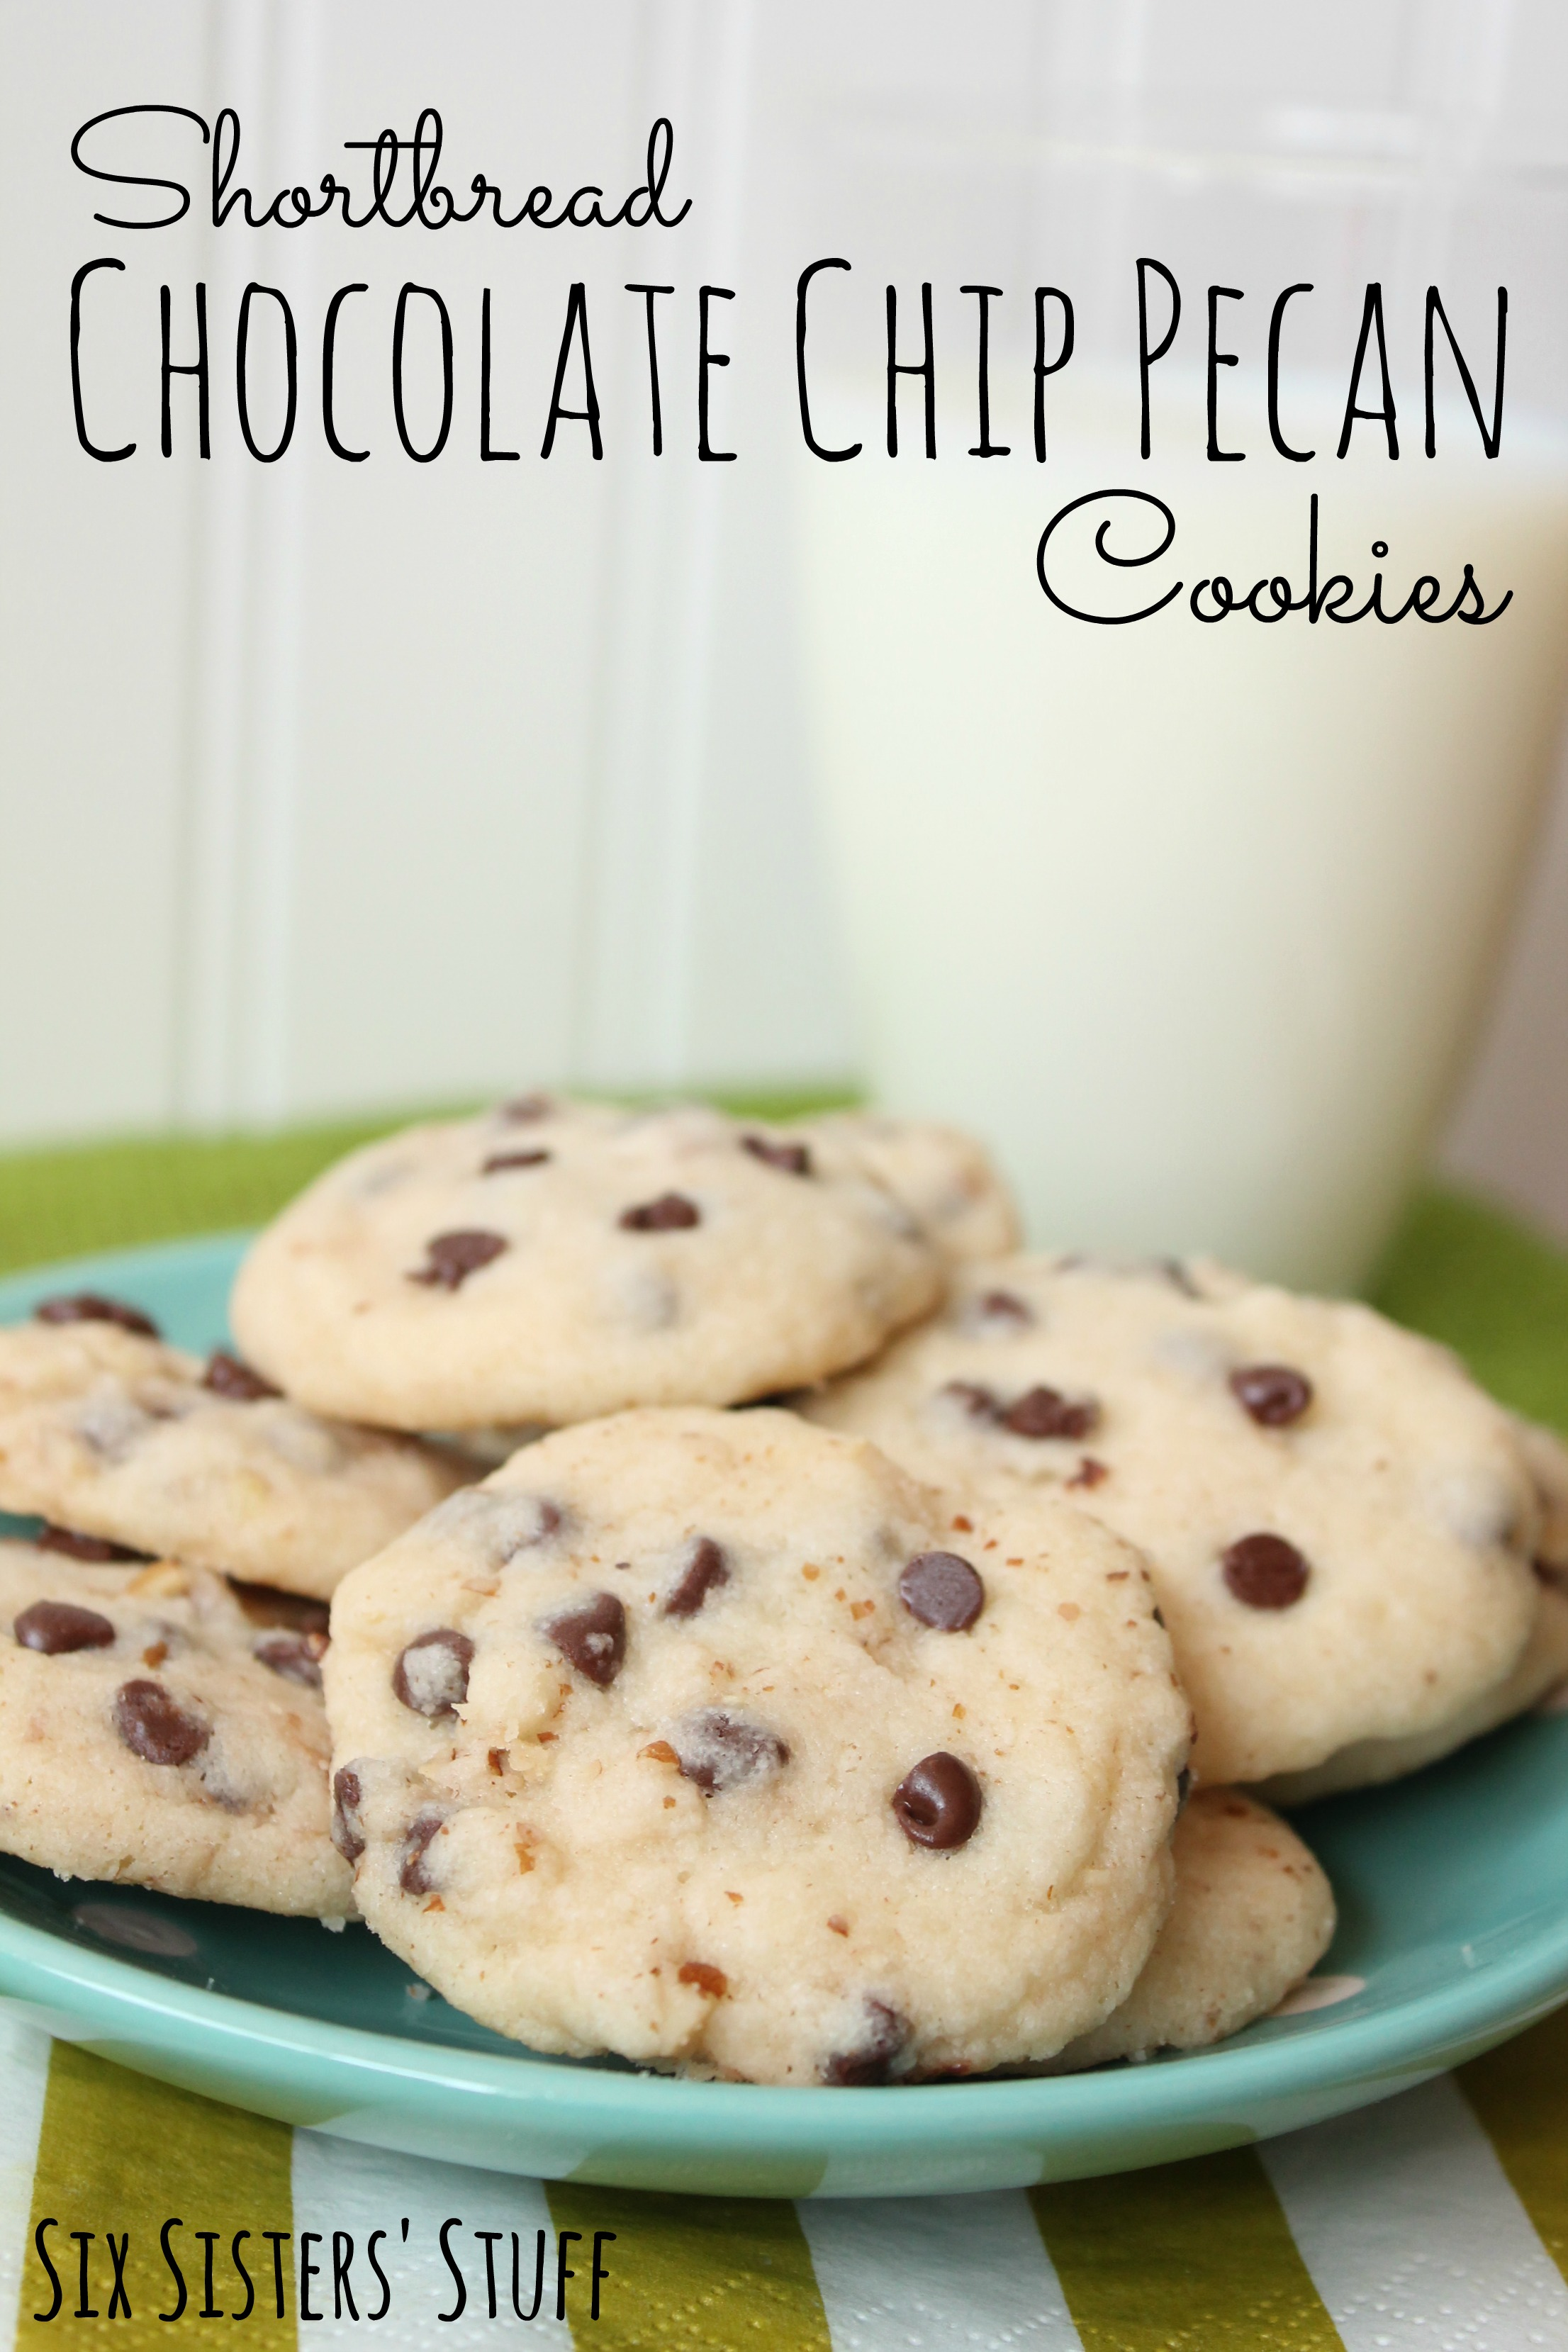 Shortbread Chocolate Chip Pecan Cookies